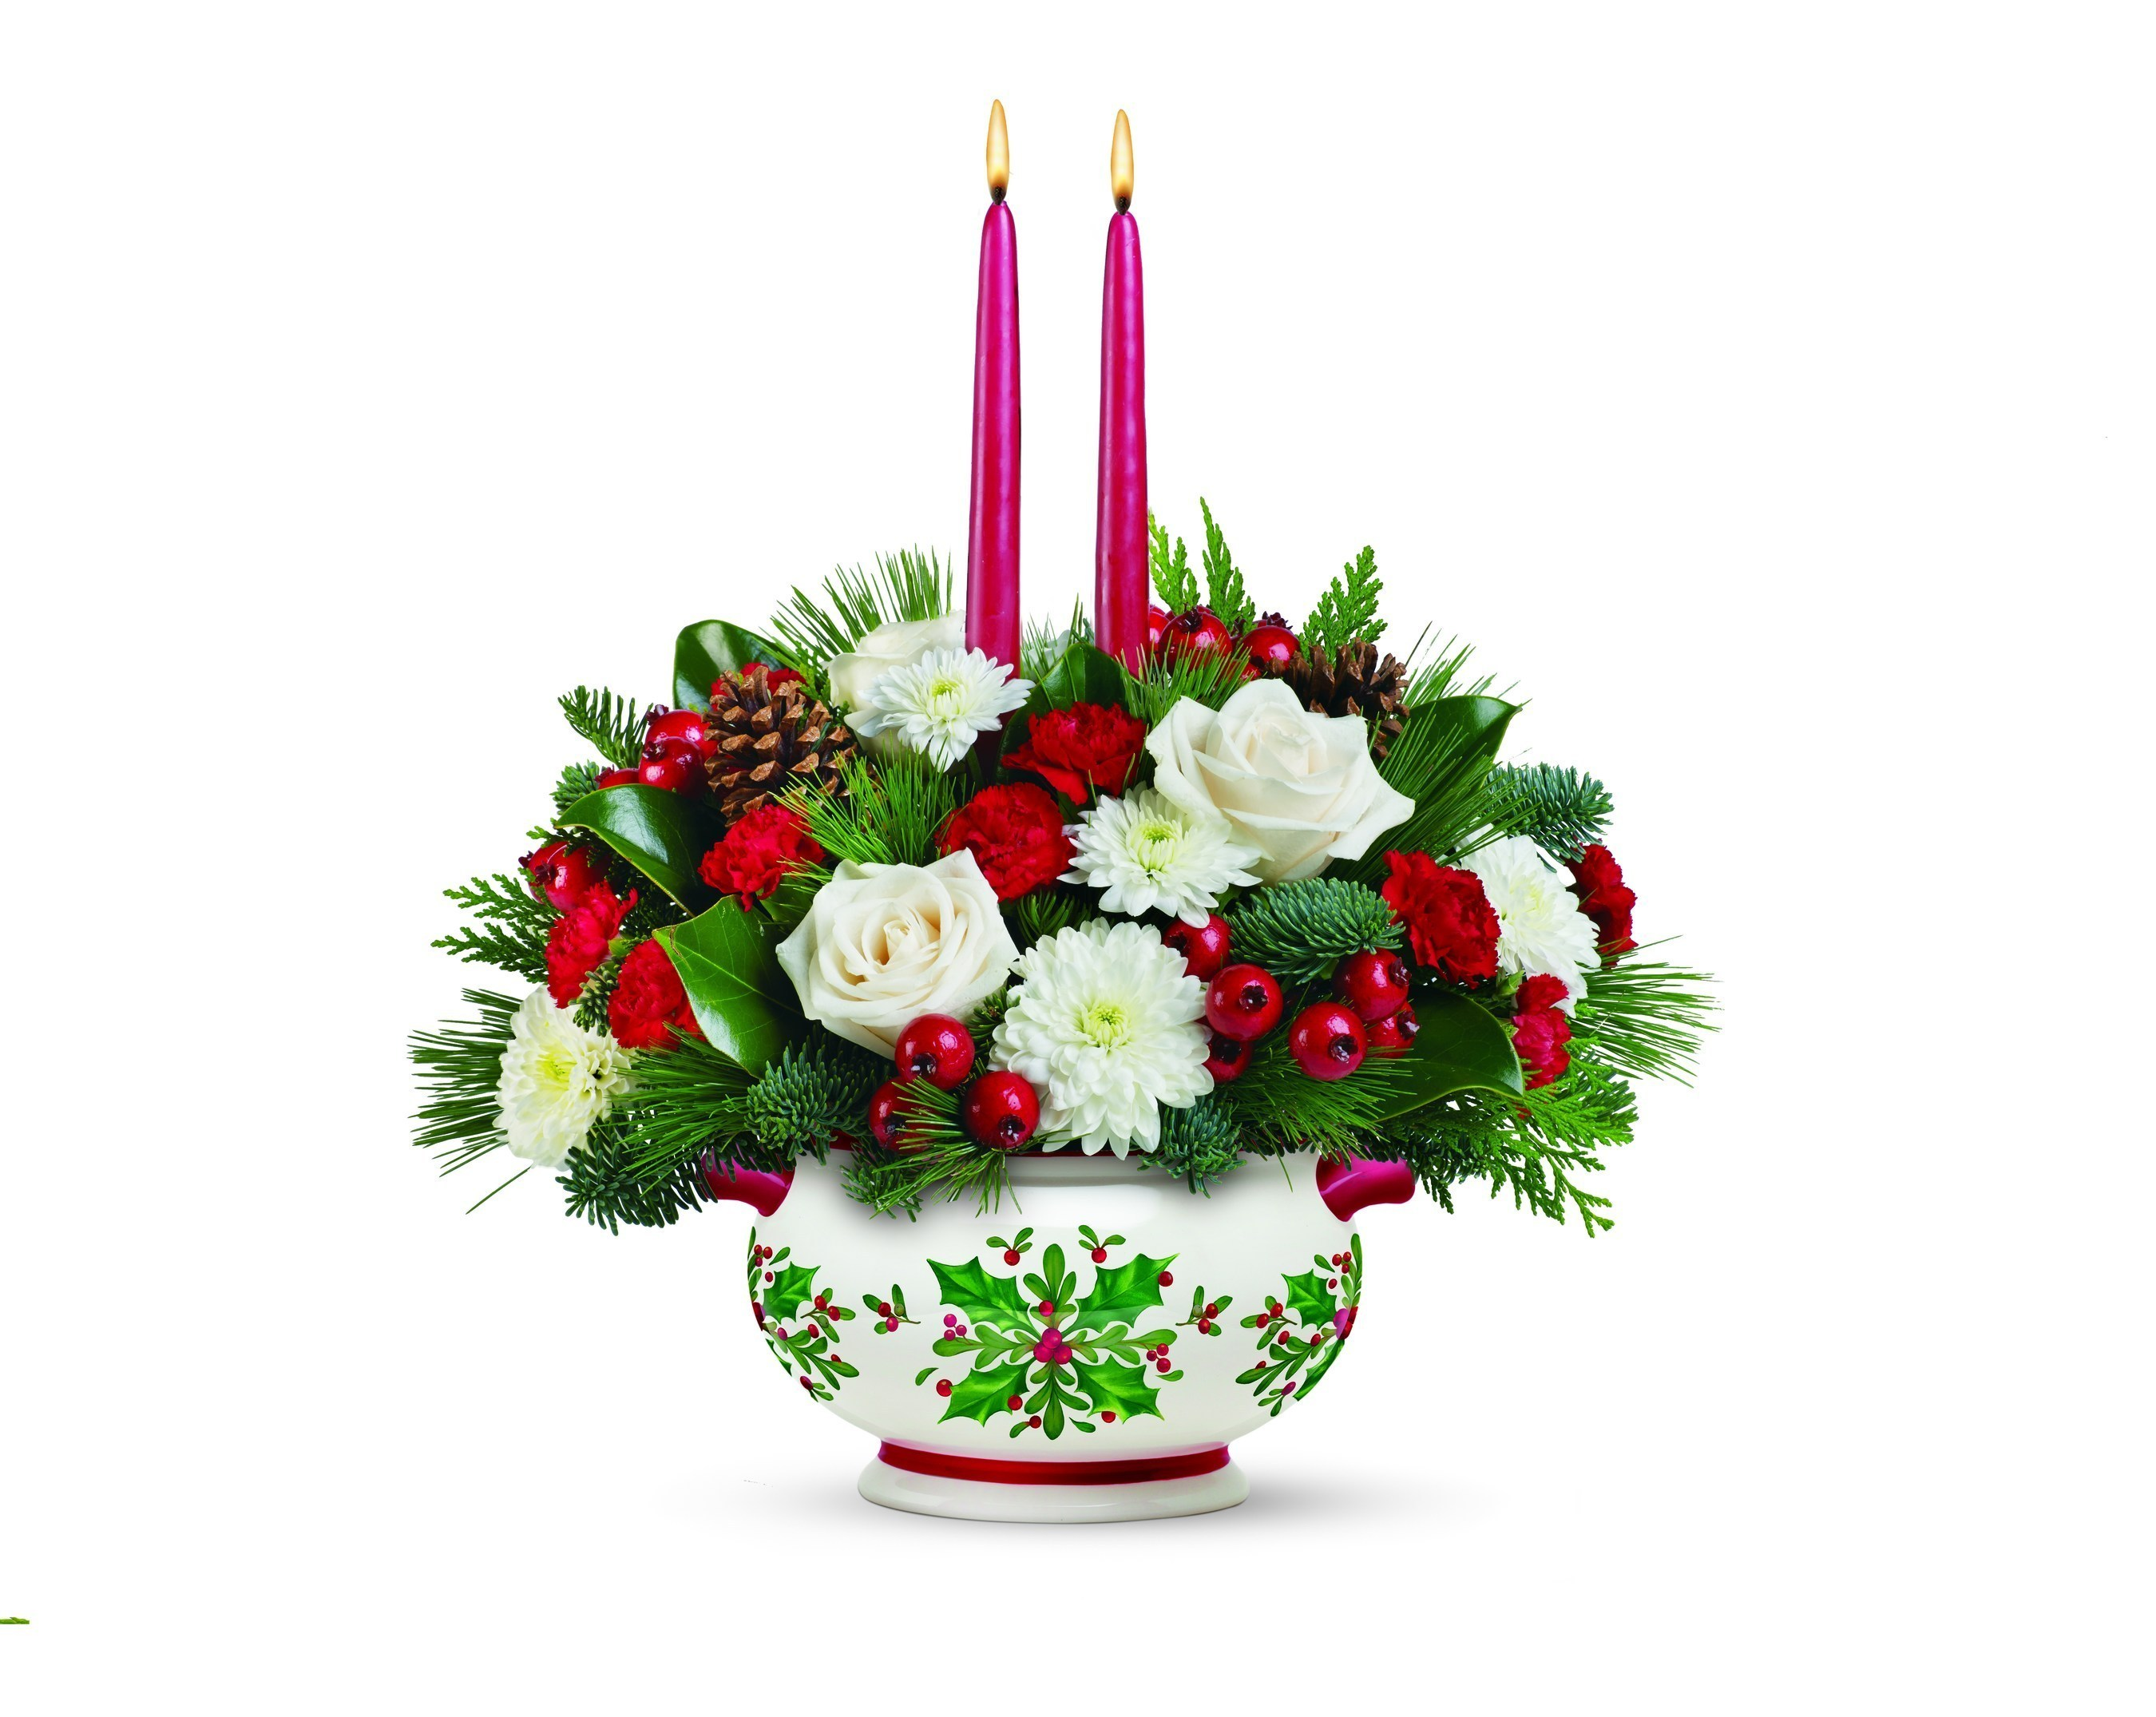 Teleflora brings you homemade for the holidays this